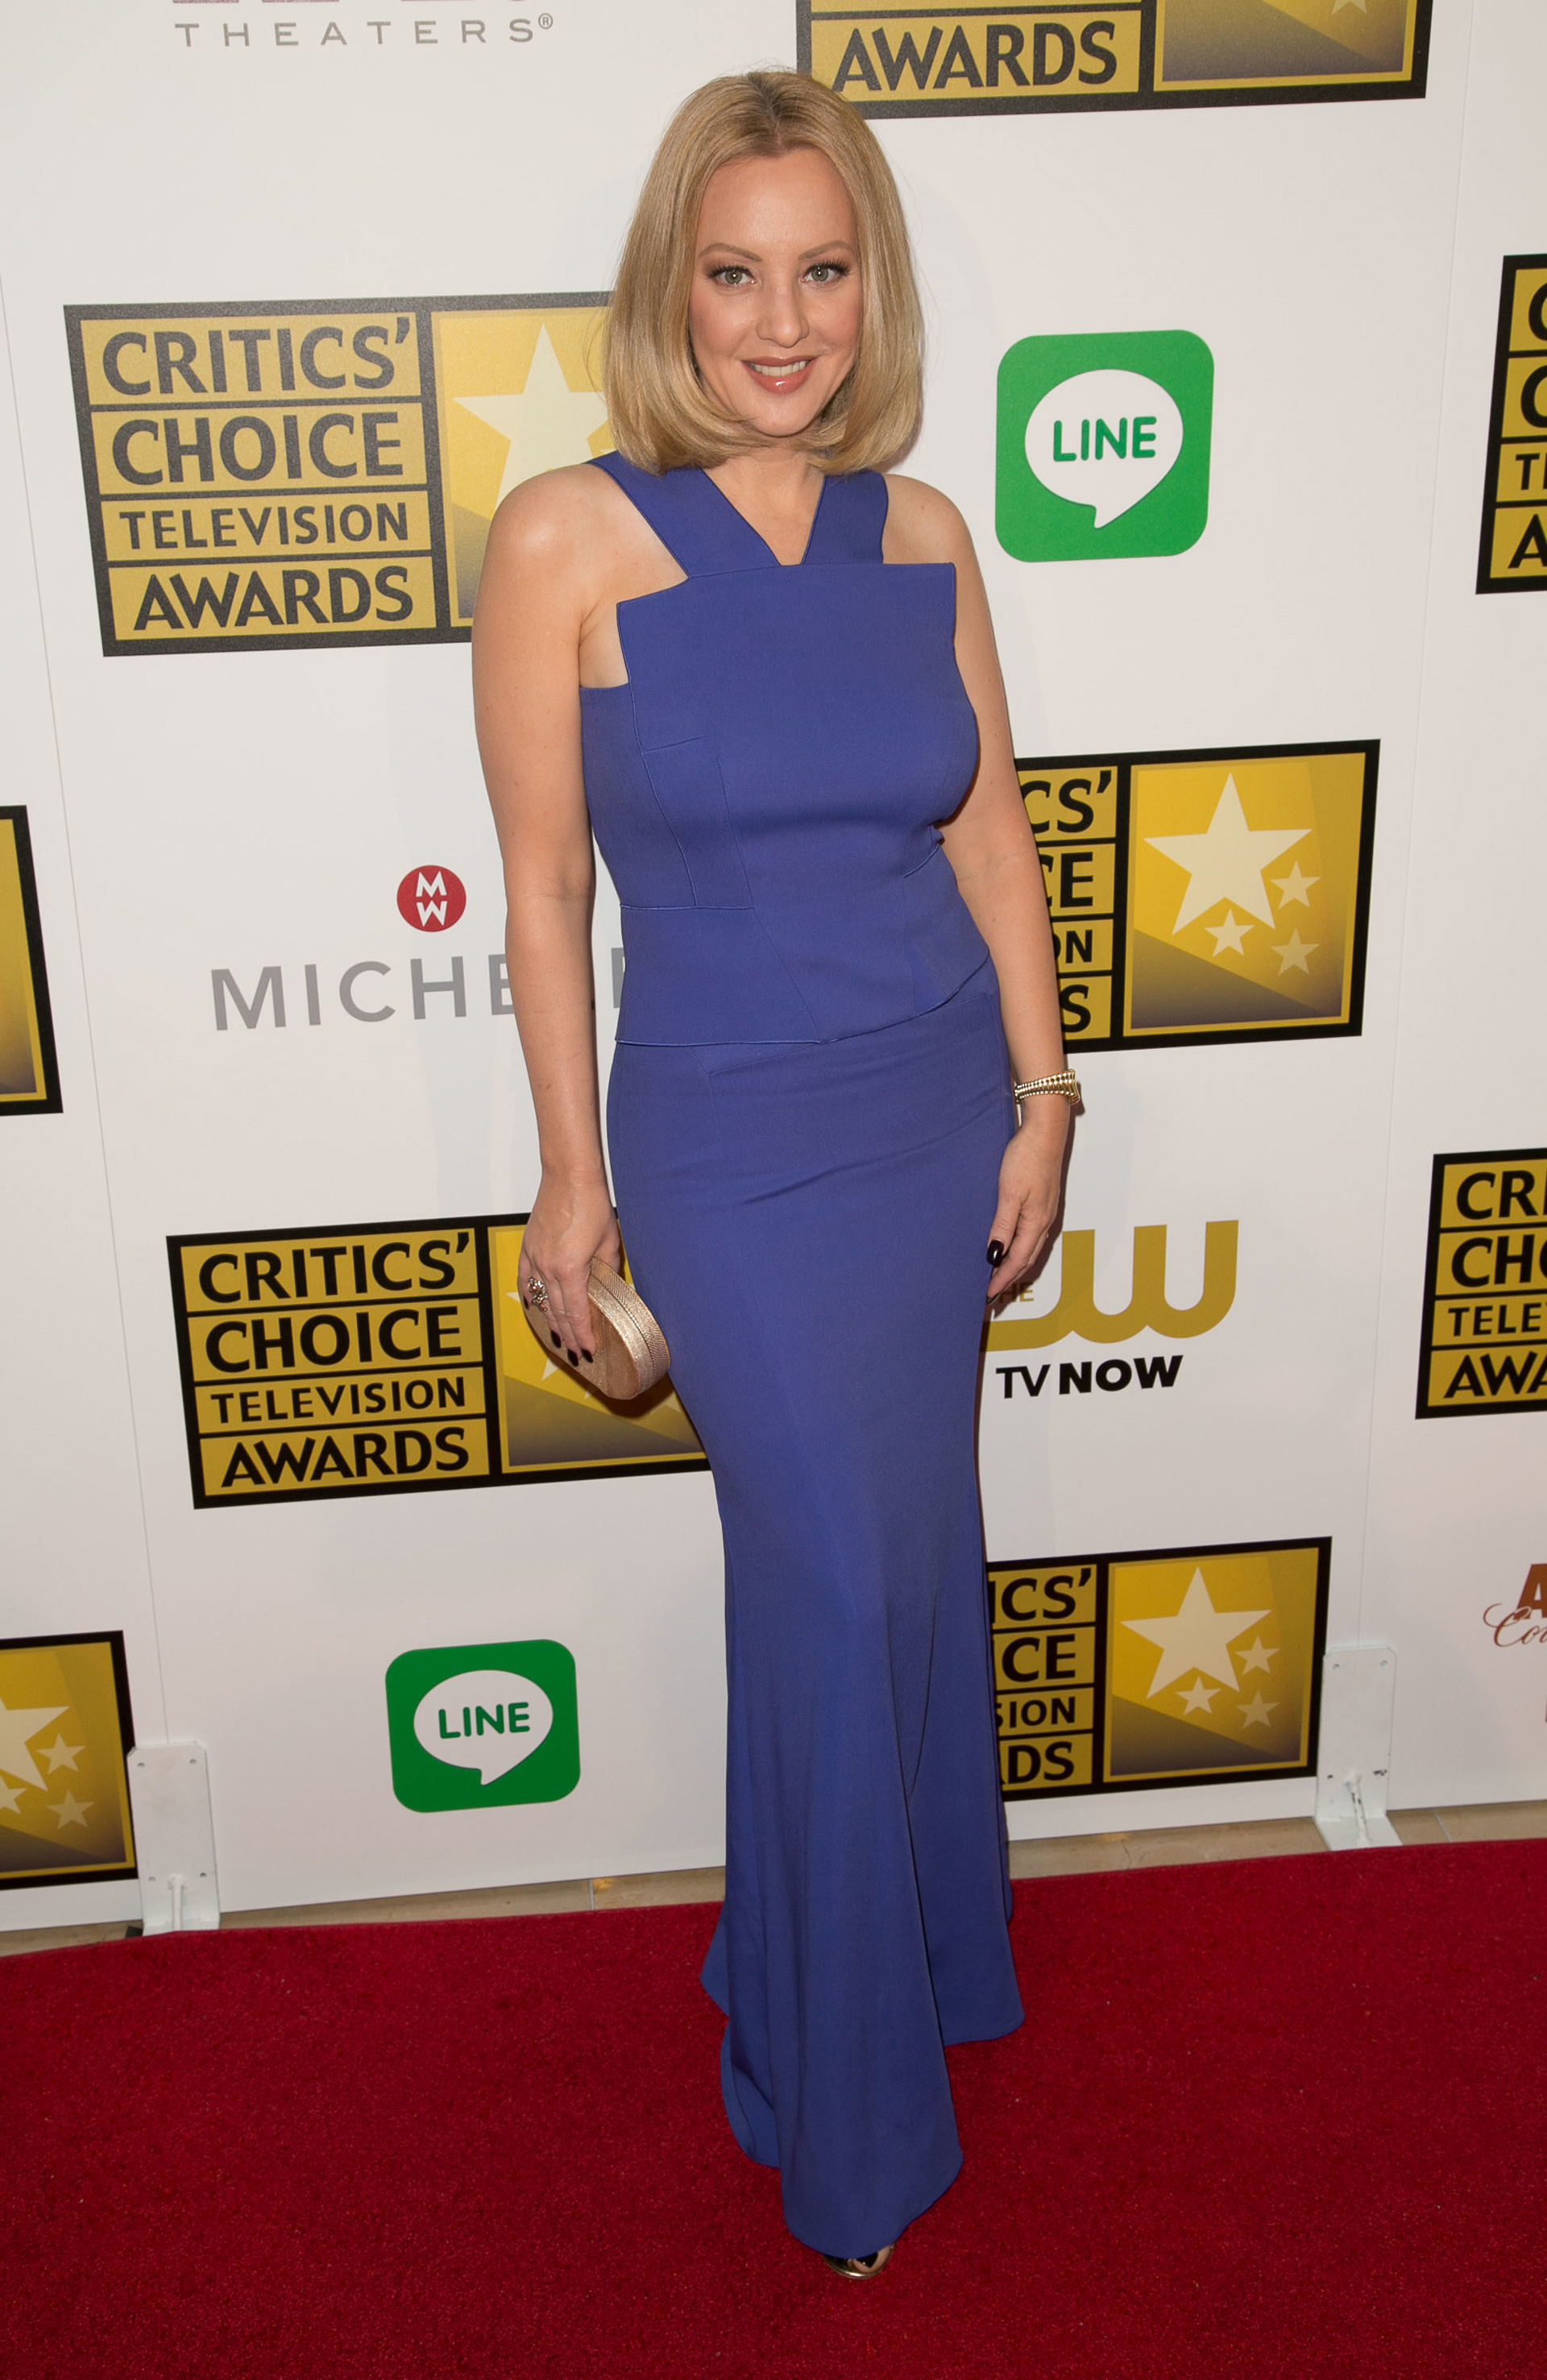 Wendi McLendon-Covey at the Critic's Choice Awards